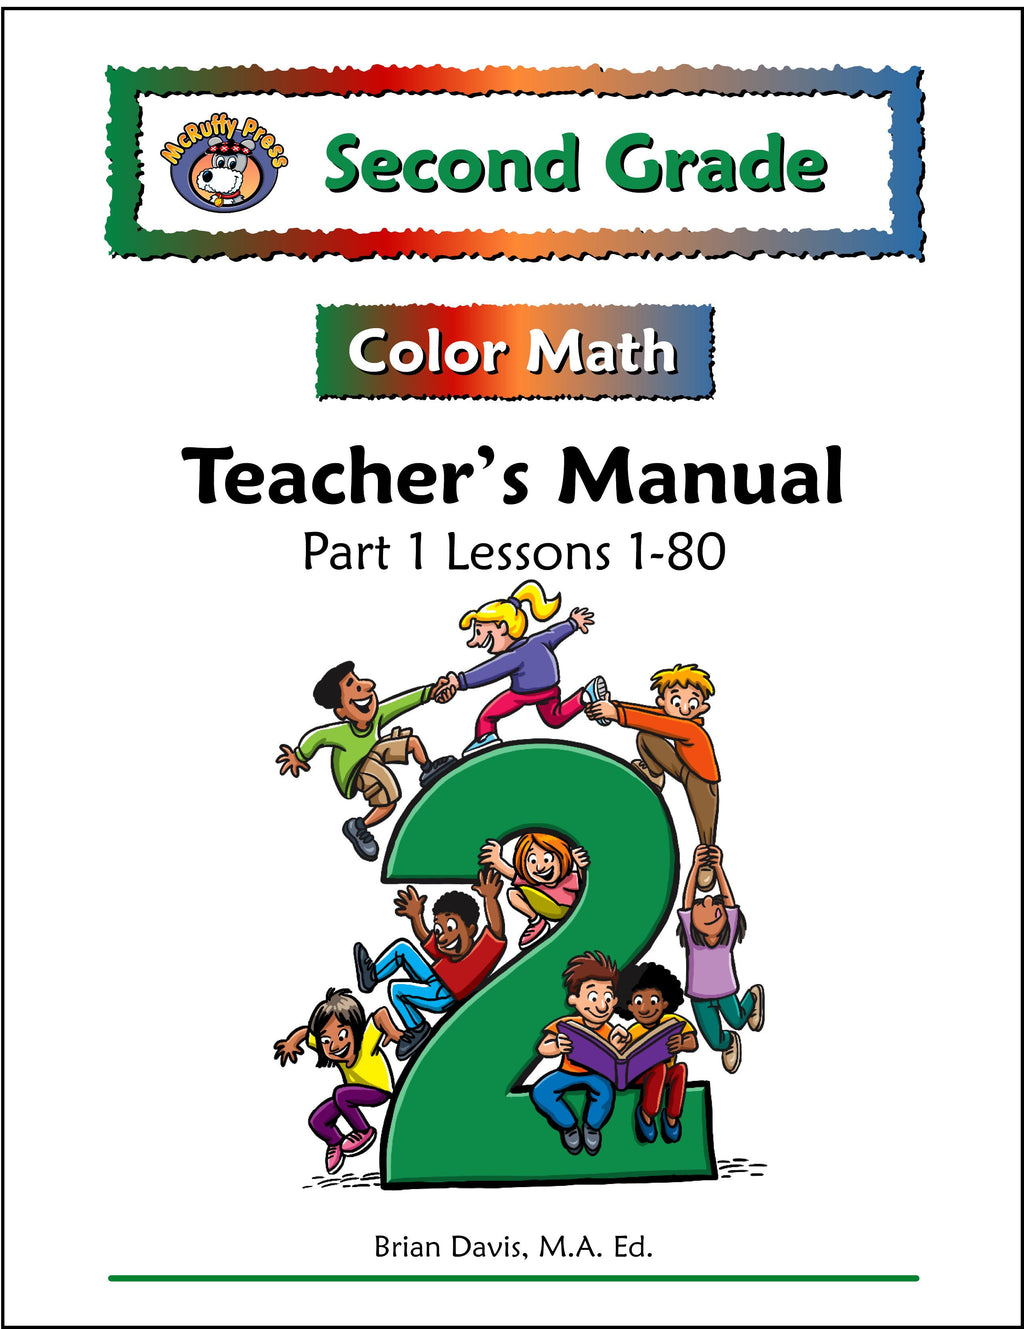 Second Grade Color Math Teacher's Manual Part 1 - McRuffy Press